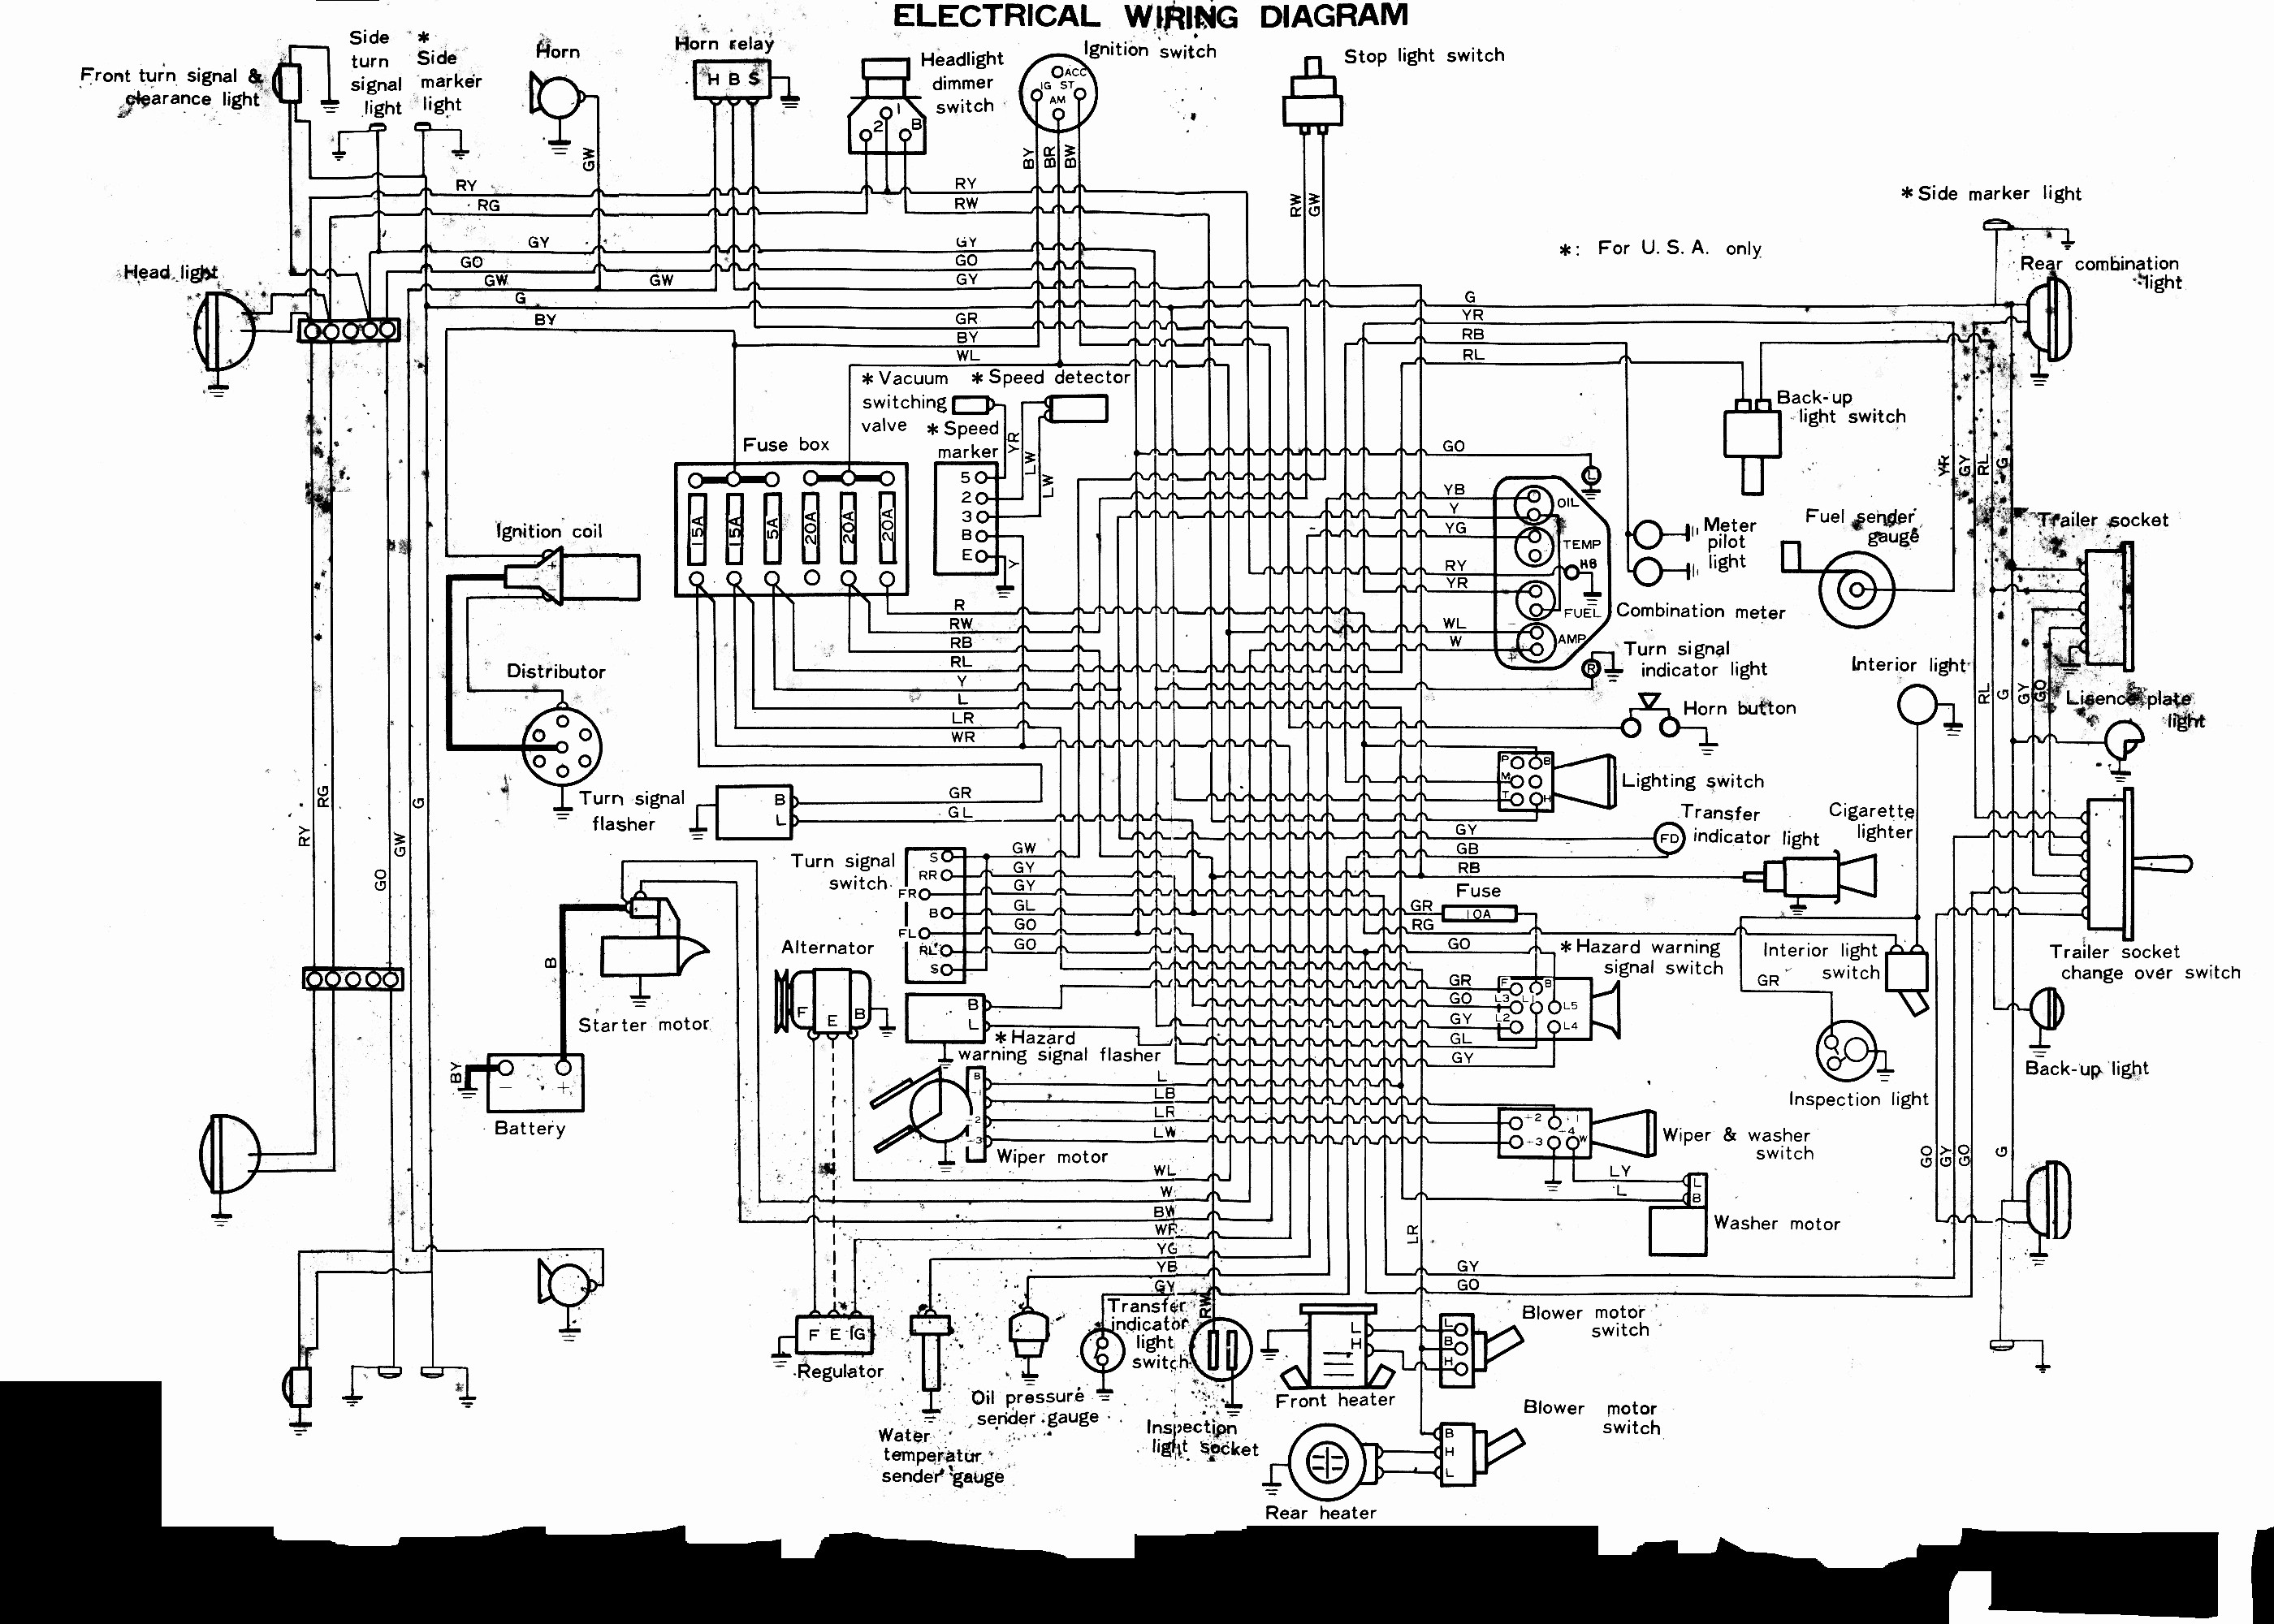 2003 Chrysler Sebring Engine Diagram 96 Chrysler Sebring Wiring Diagram 96  Free Engine Image for User